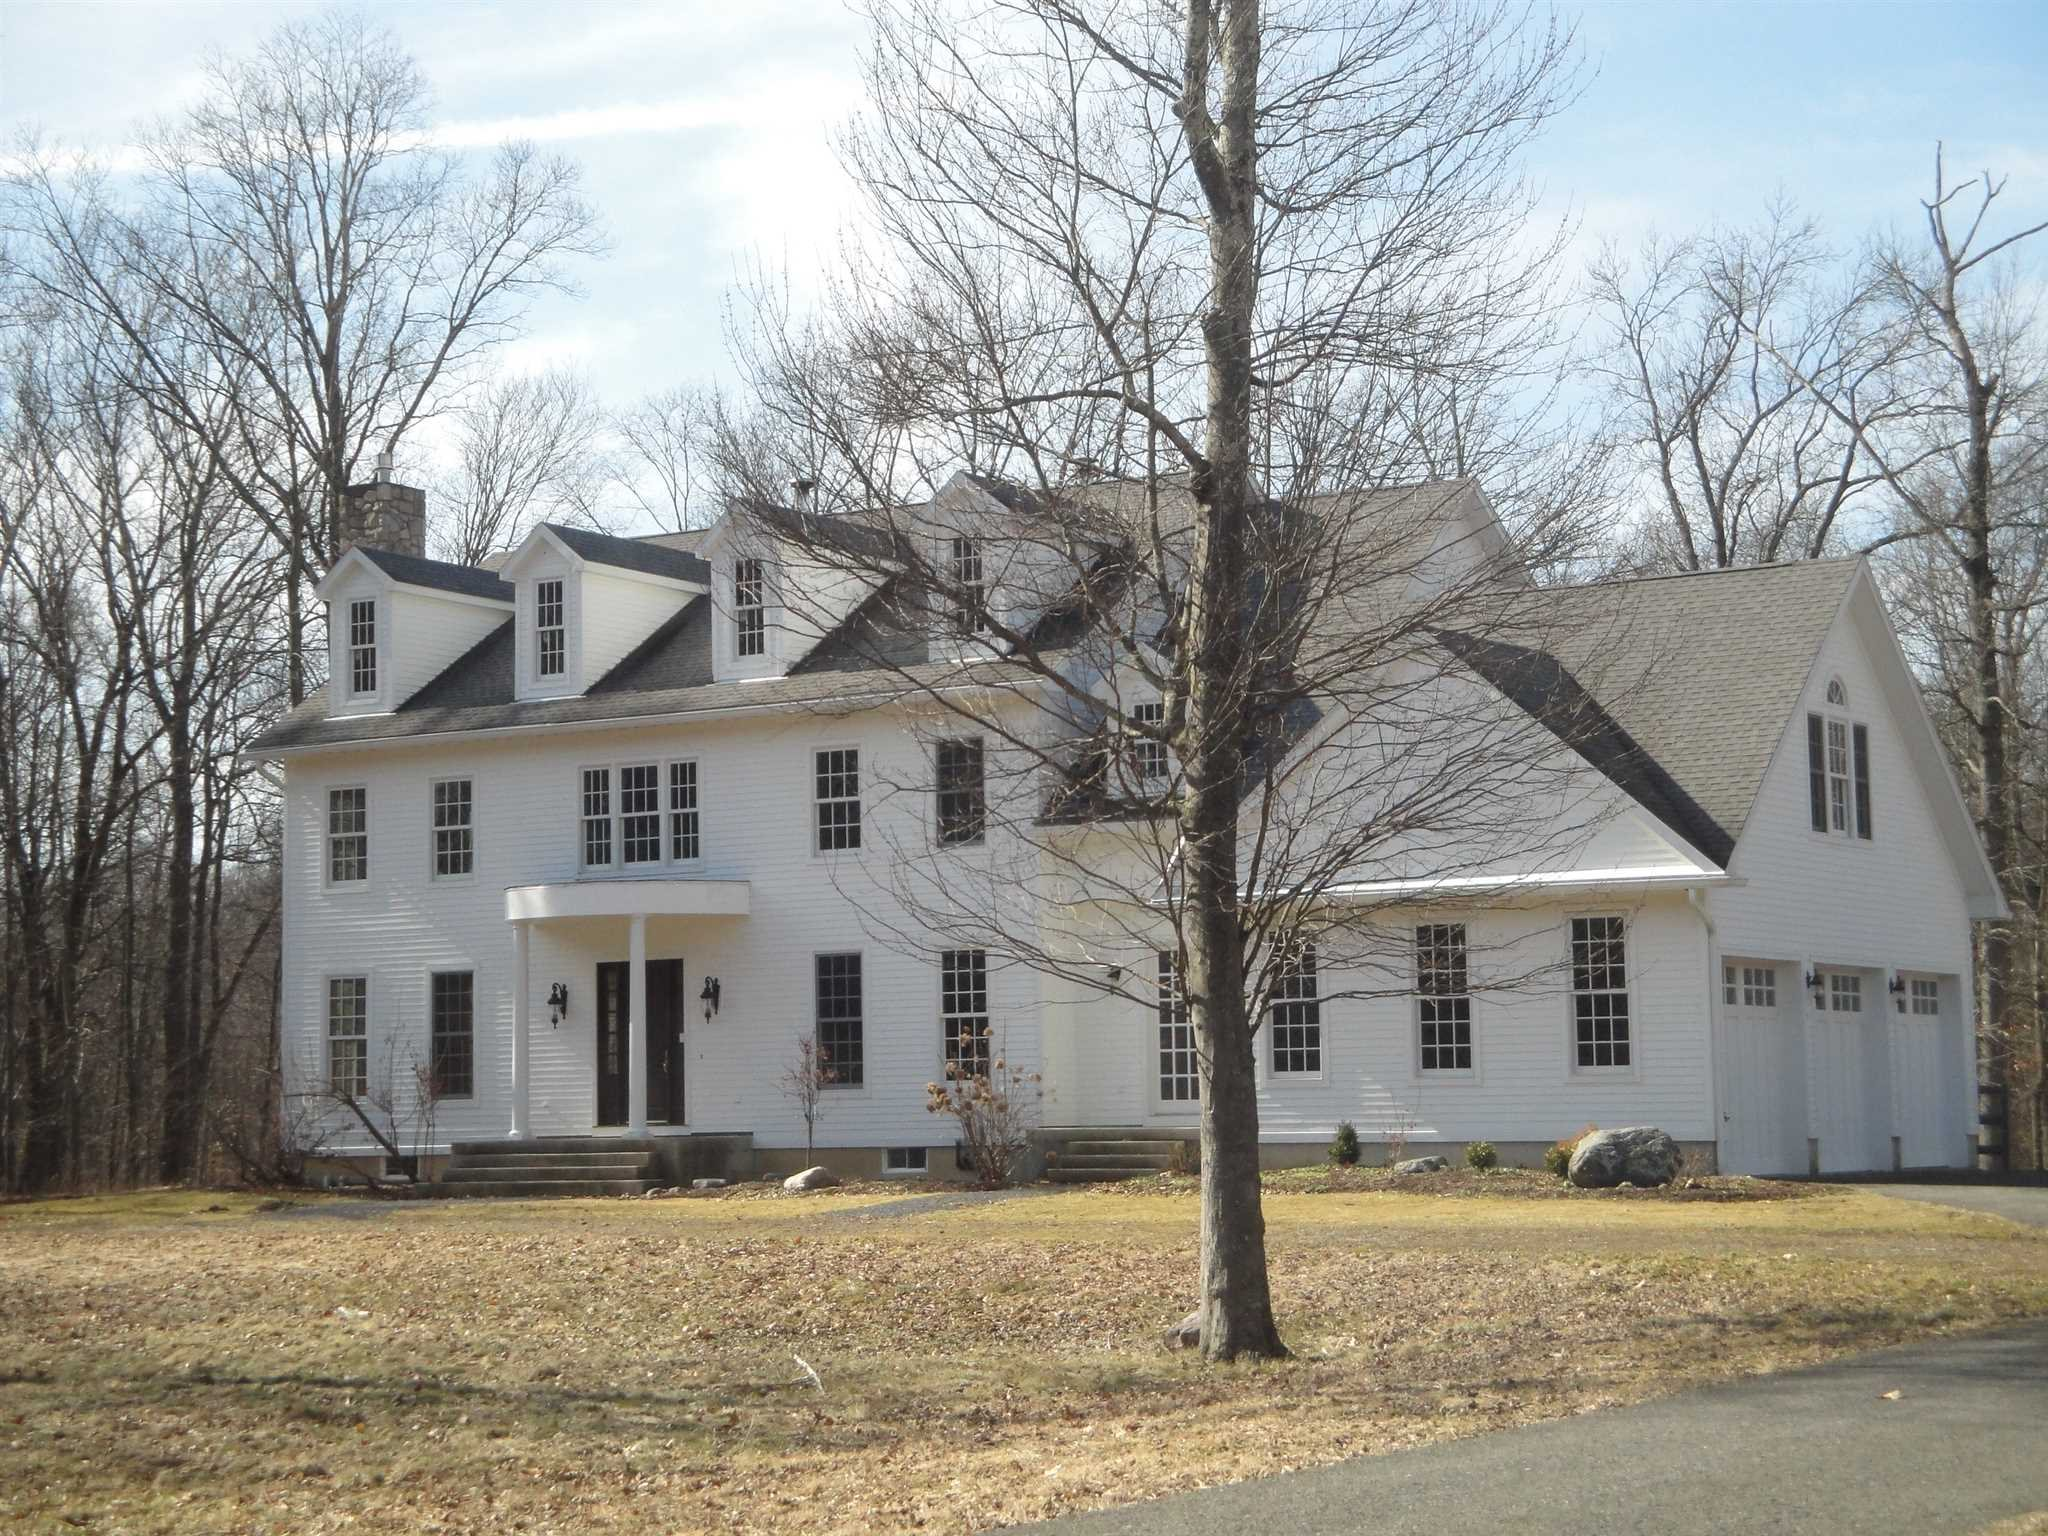 Single Family Home for Sale at 44 LOCUST HILL DRIVE 44 LOCUST HILL DRIVE Red Hook, New York 12571 United States